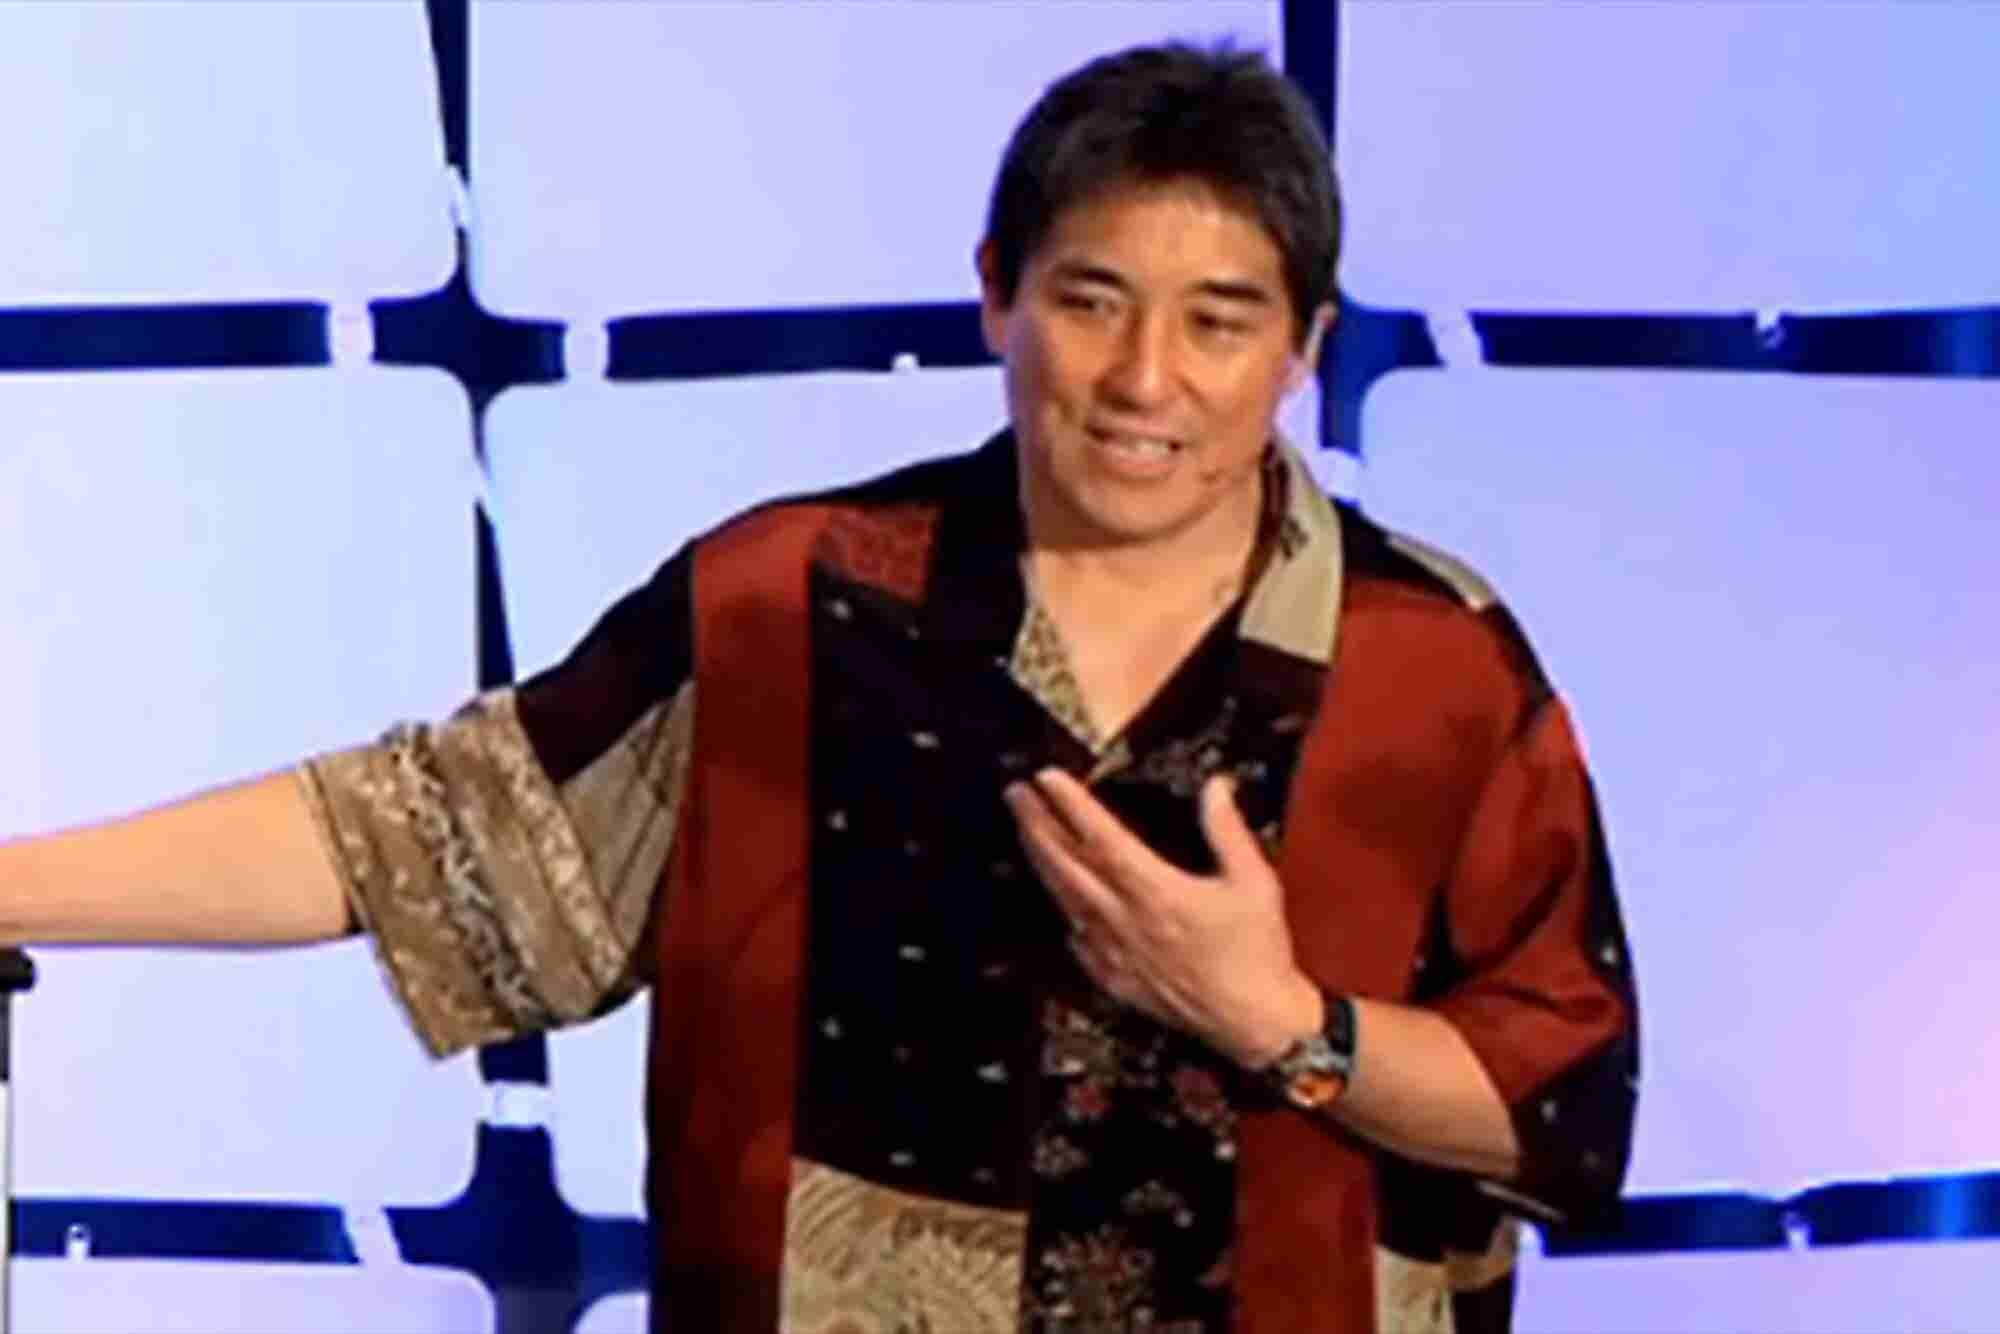 Guy Kawasaki: To Win at Social Media, 'Plant Many Seeds'